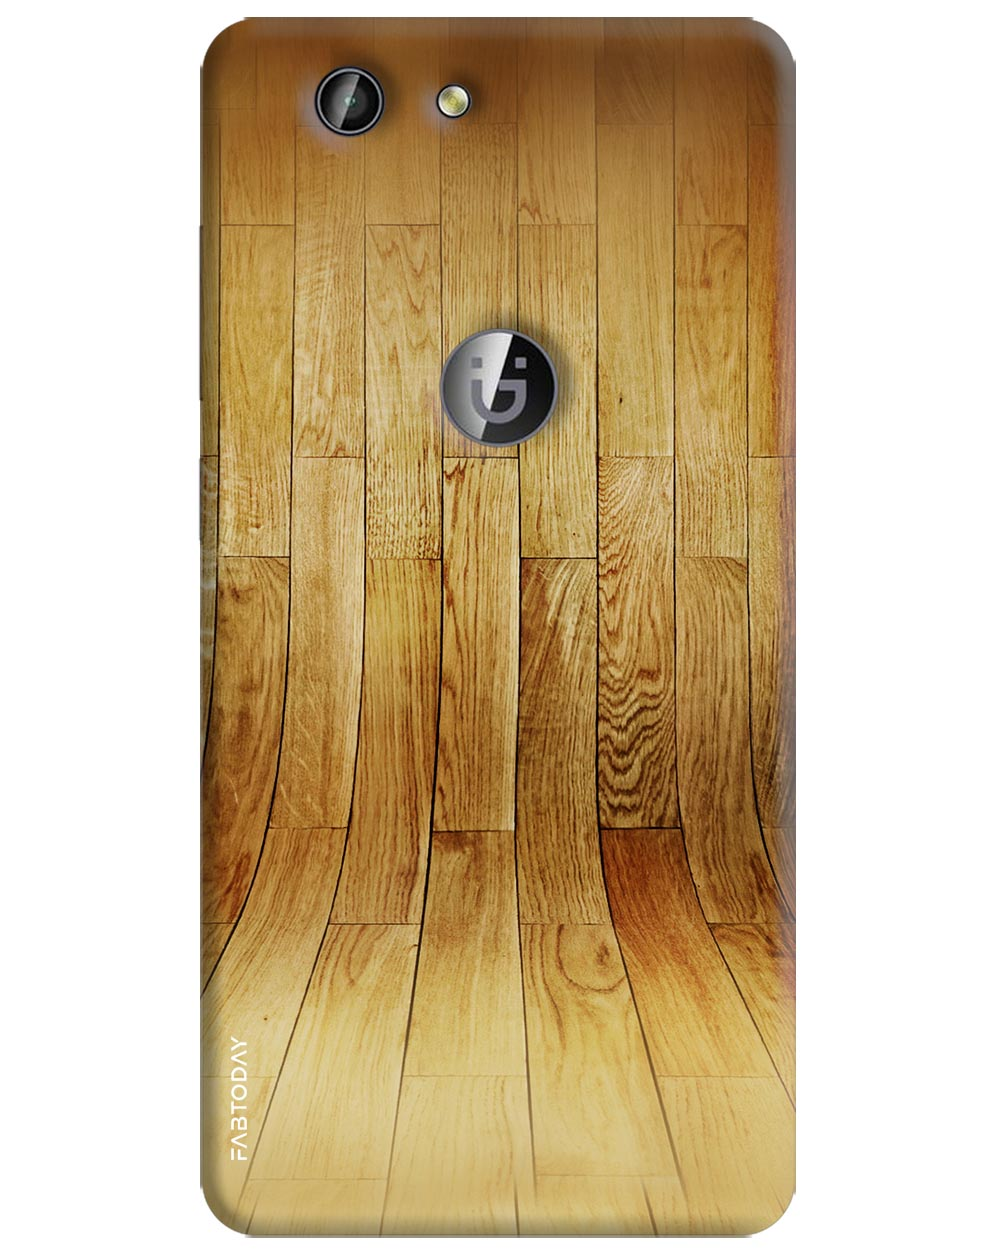 Wooden Texture Back Cover for Gionee F103 Pro